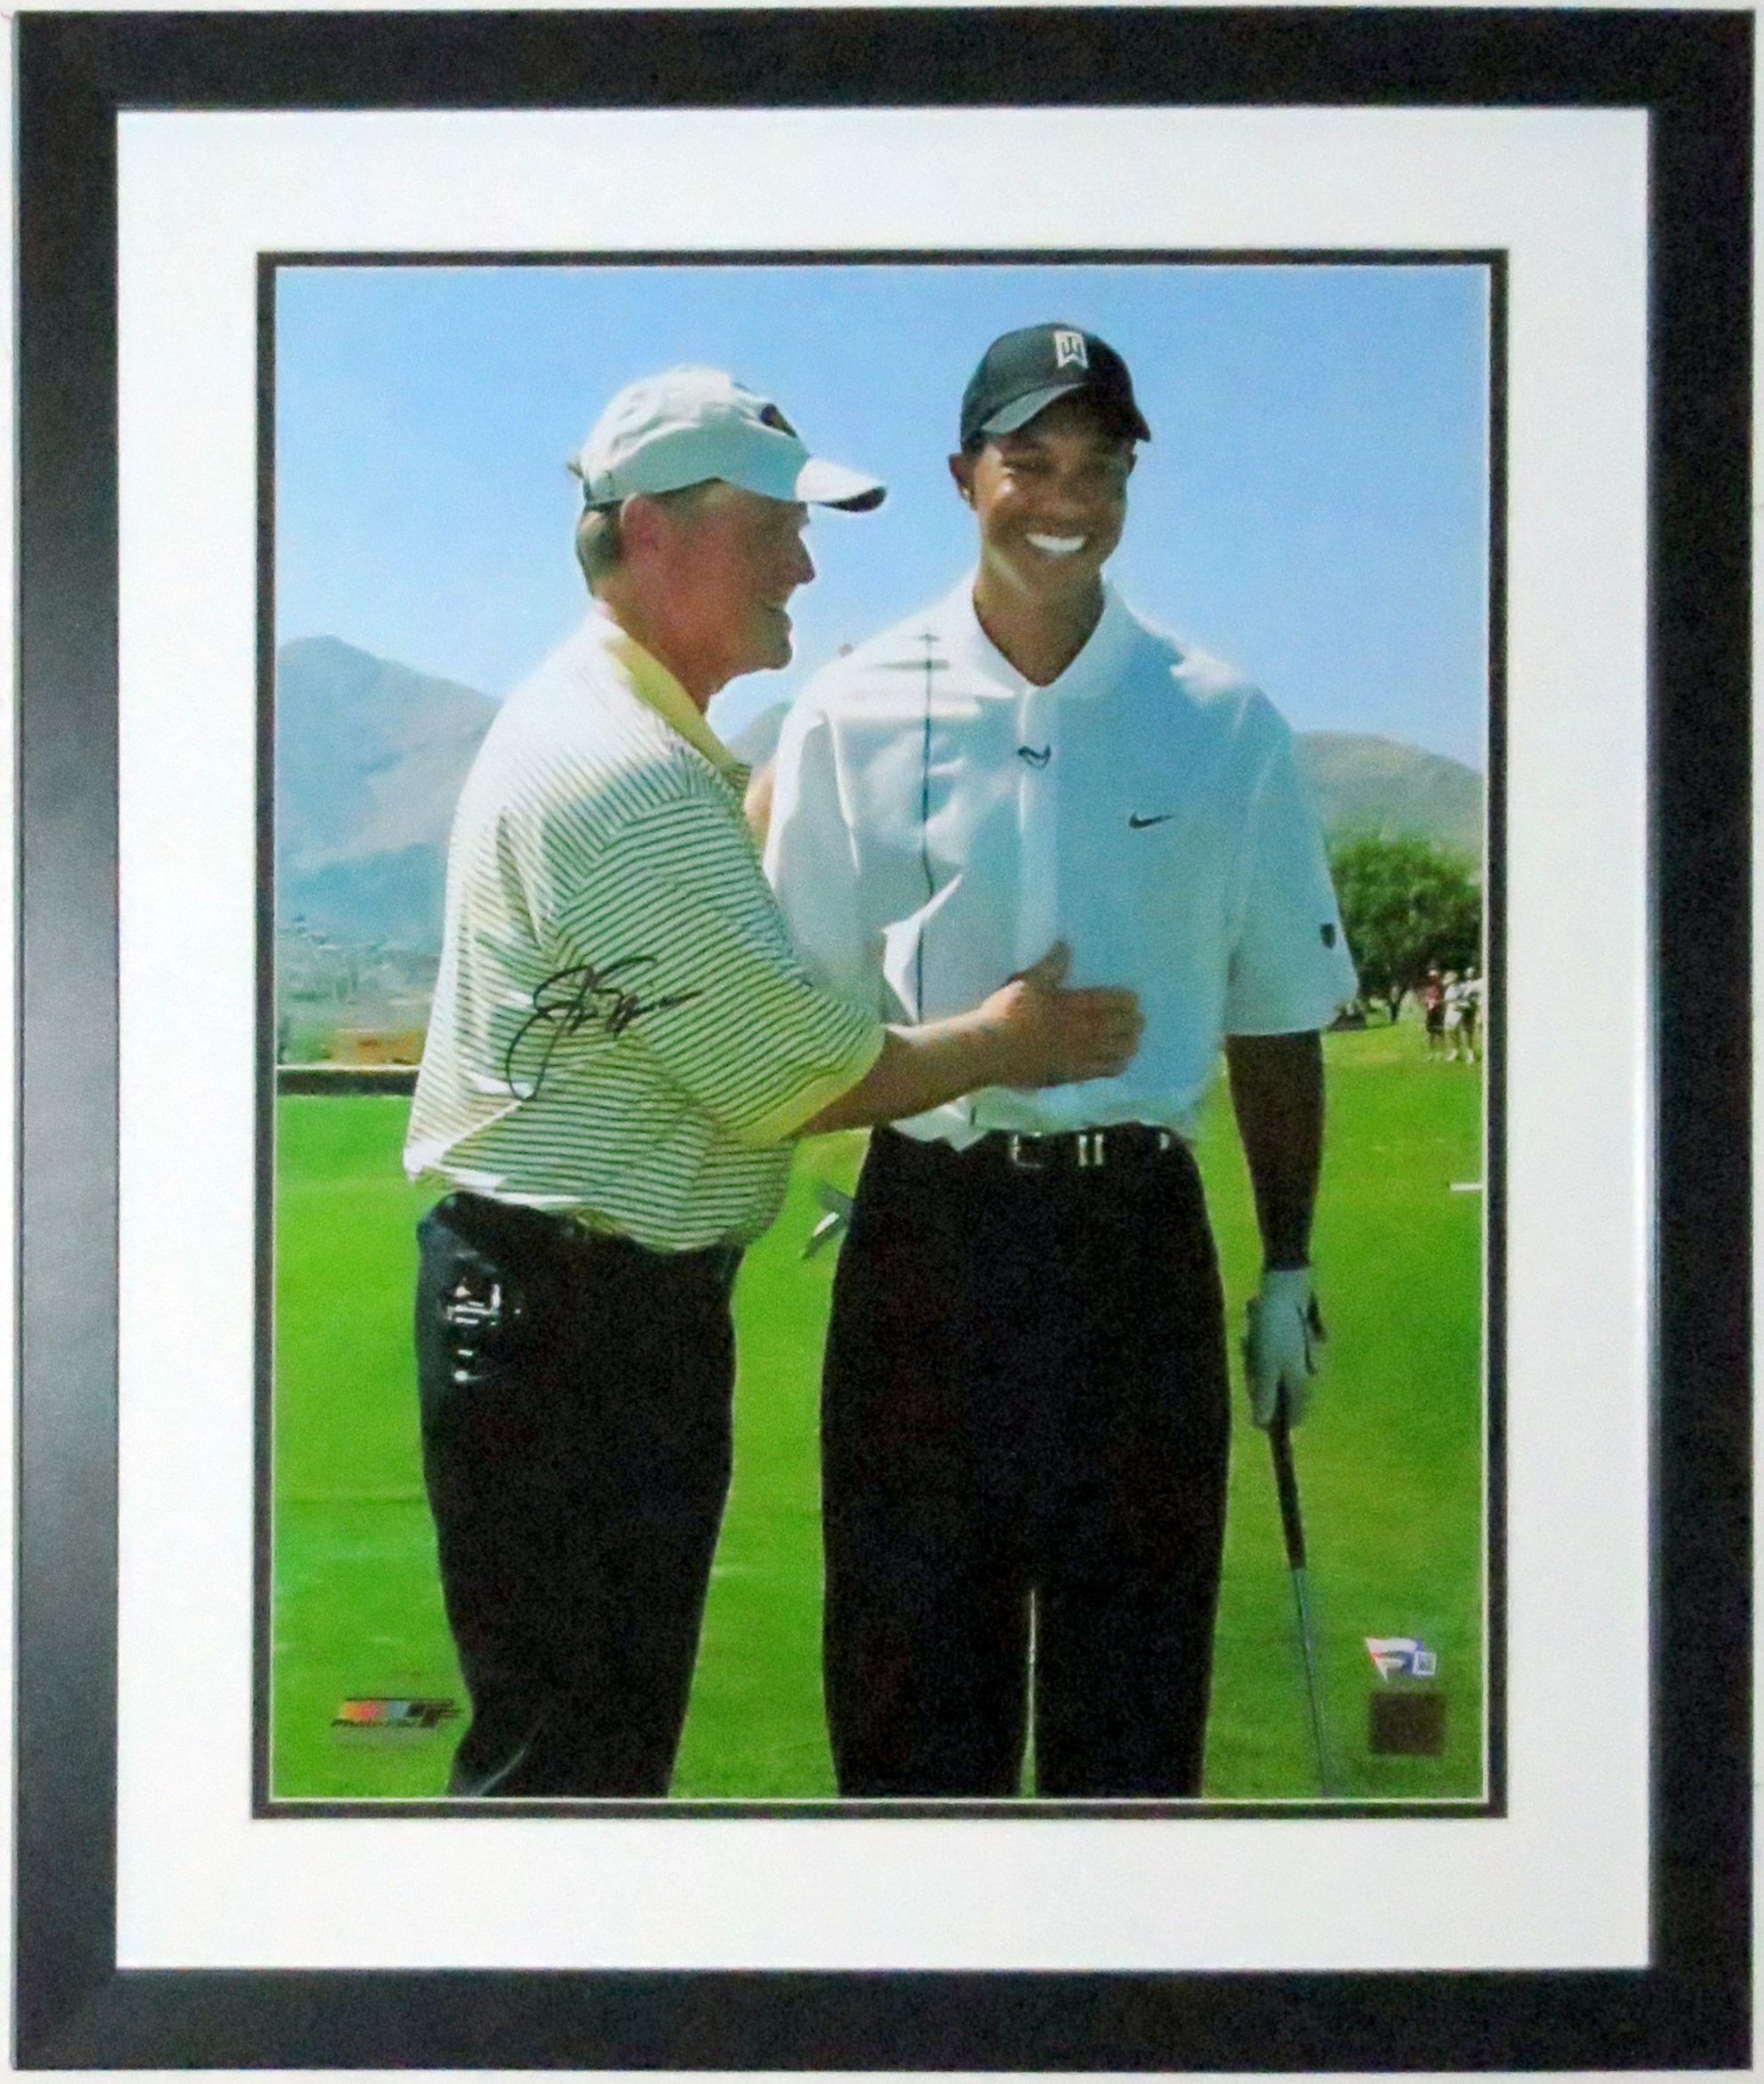 Jack Nicklaus with Tiger Woods Signed 16x20 Photo - Fanatics COA Authenticated - Professionally Framed